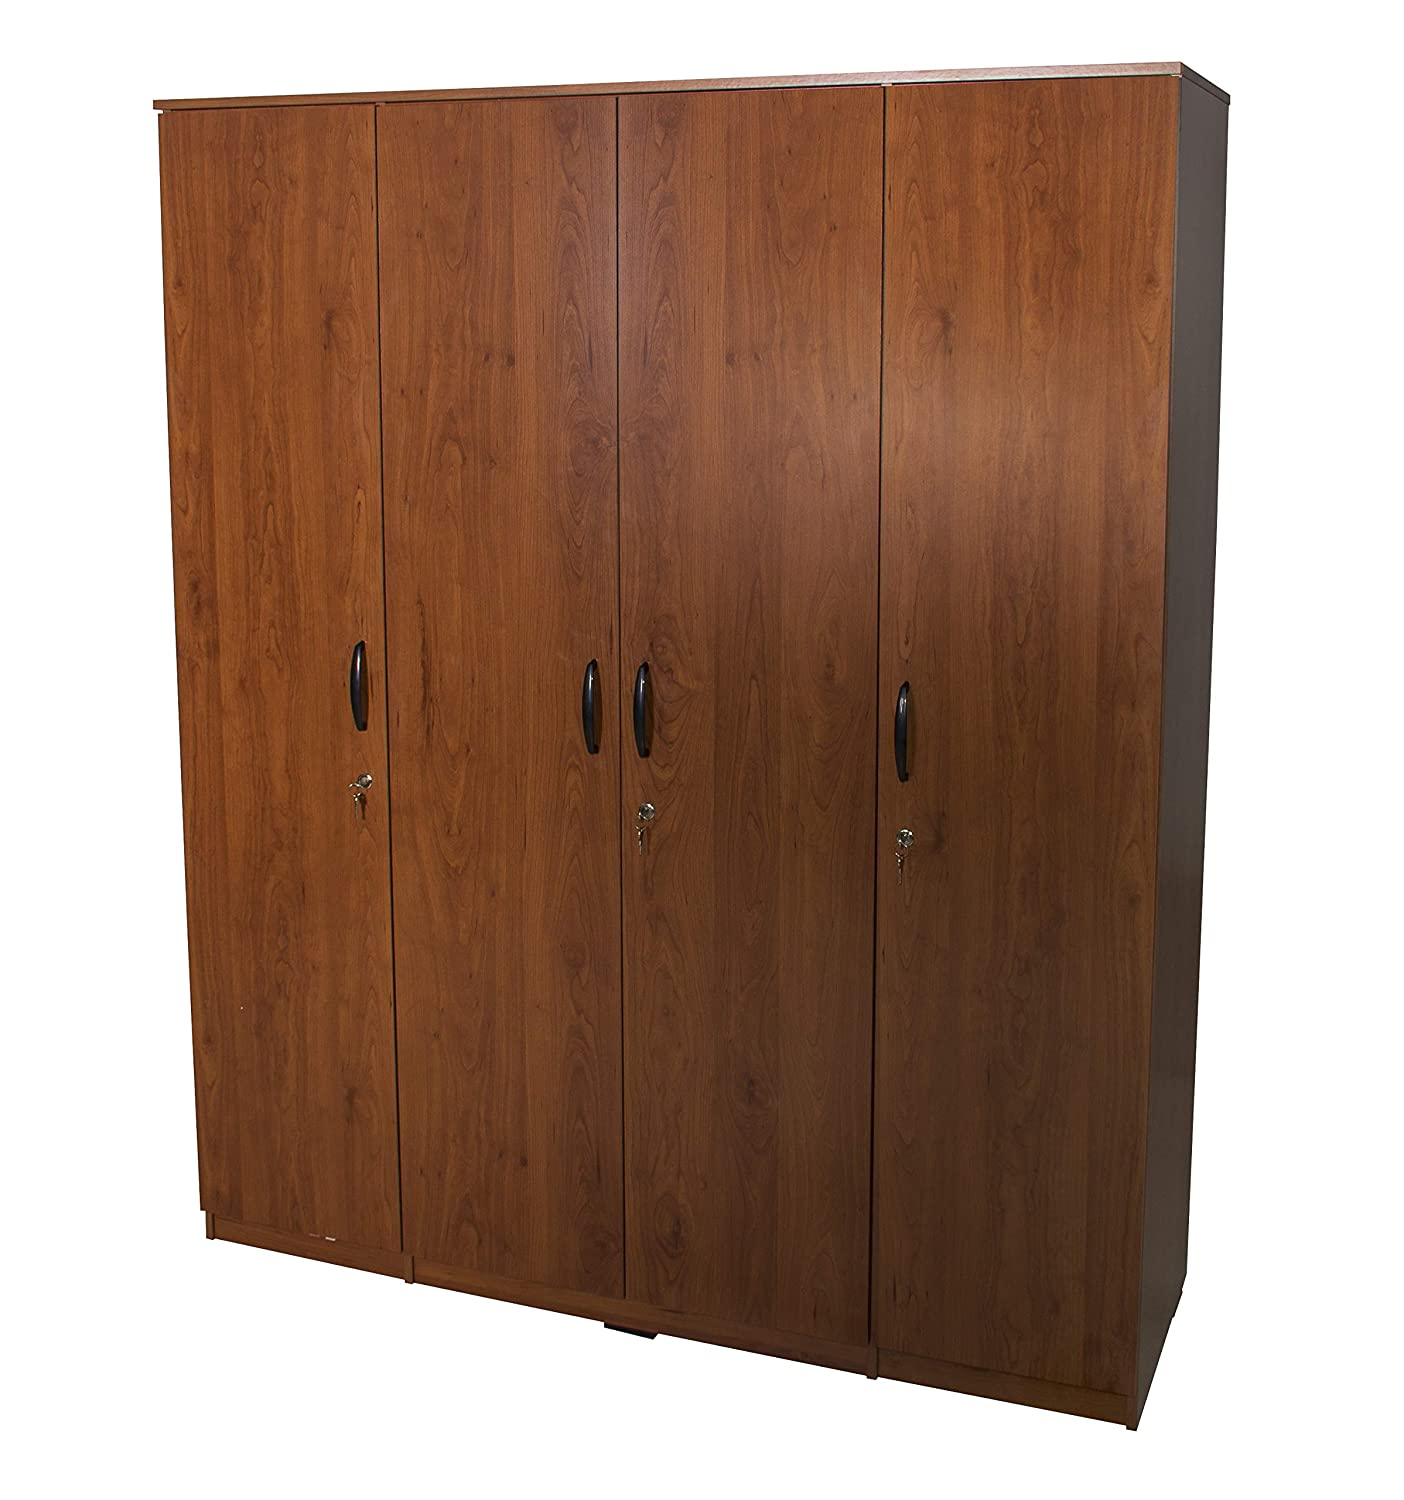 Zuari Star 4 Door Wardrobe (NR Teak)